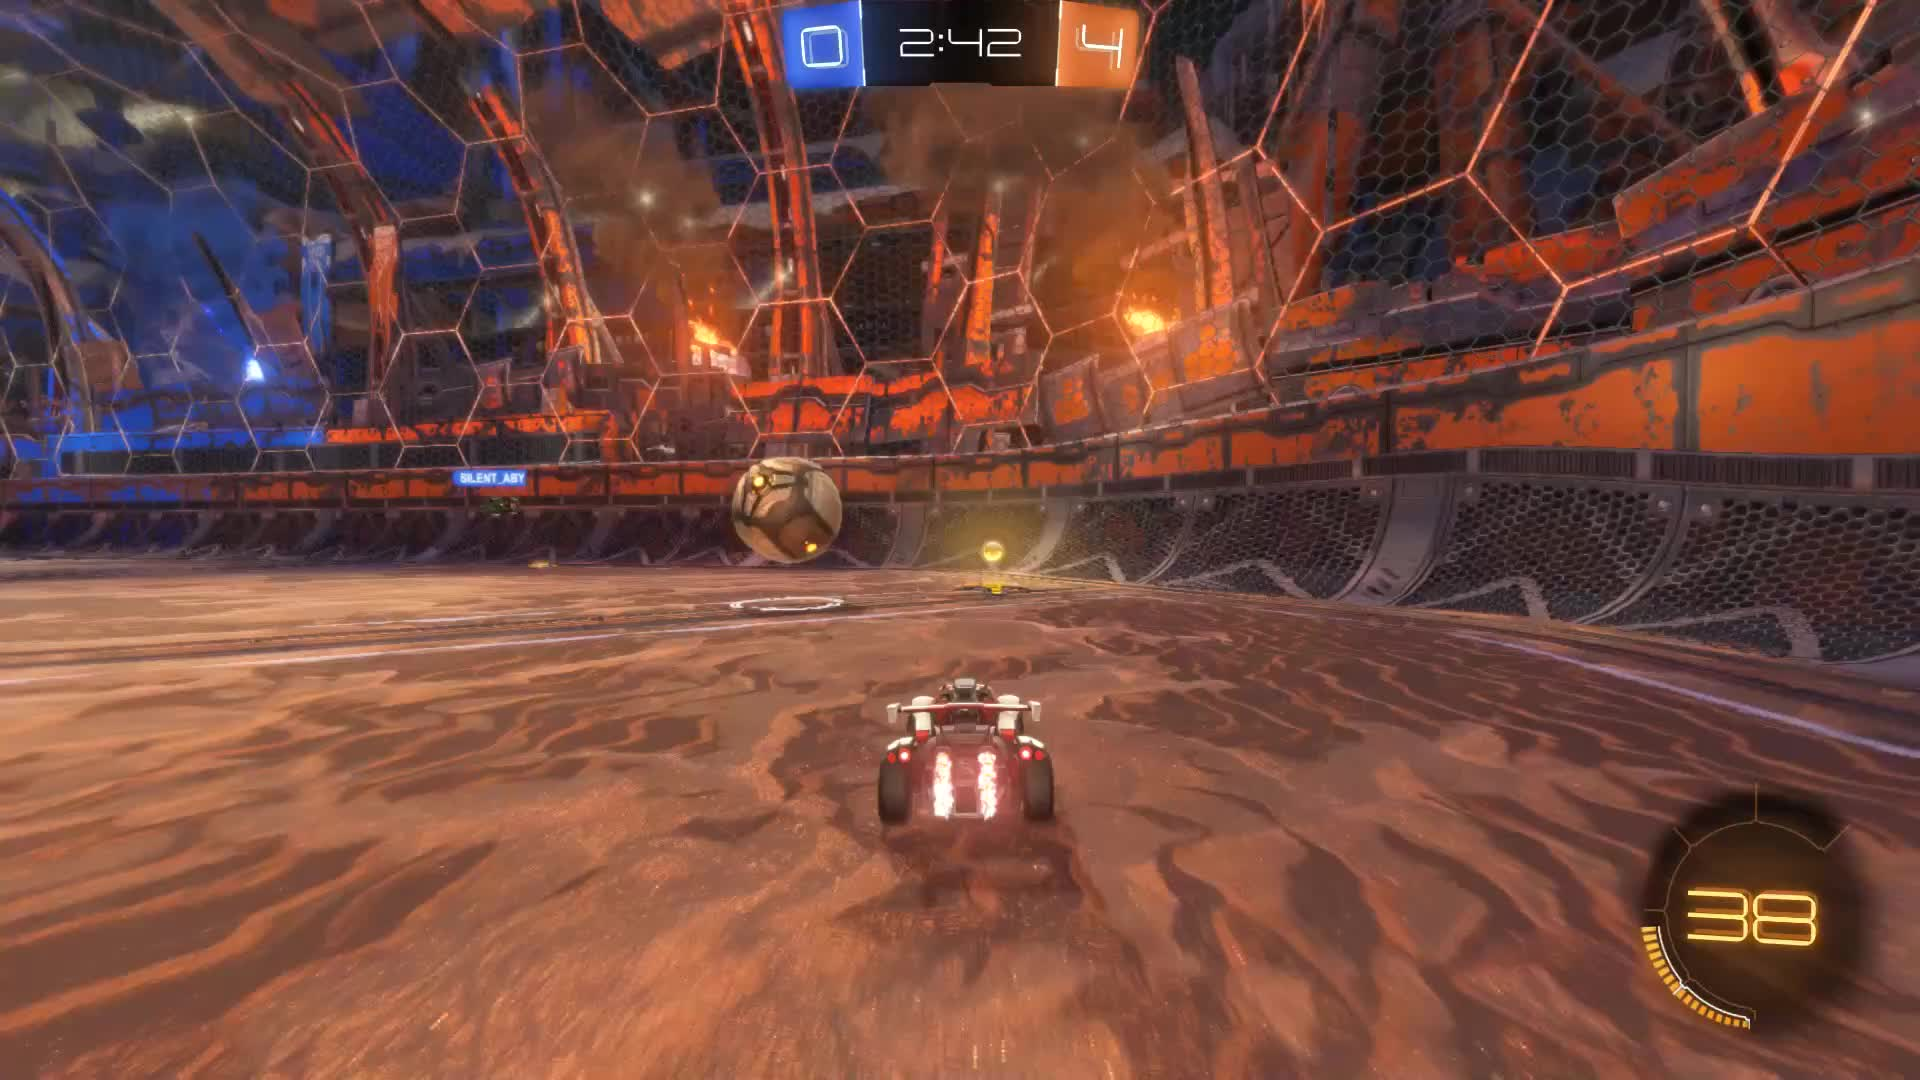 Gif Your Game, GifYourGame, Goal, Nyhx, Rocket League, RocketLeague, ⏱️ Goal 5: Nyhx GIFs